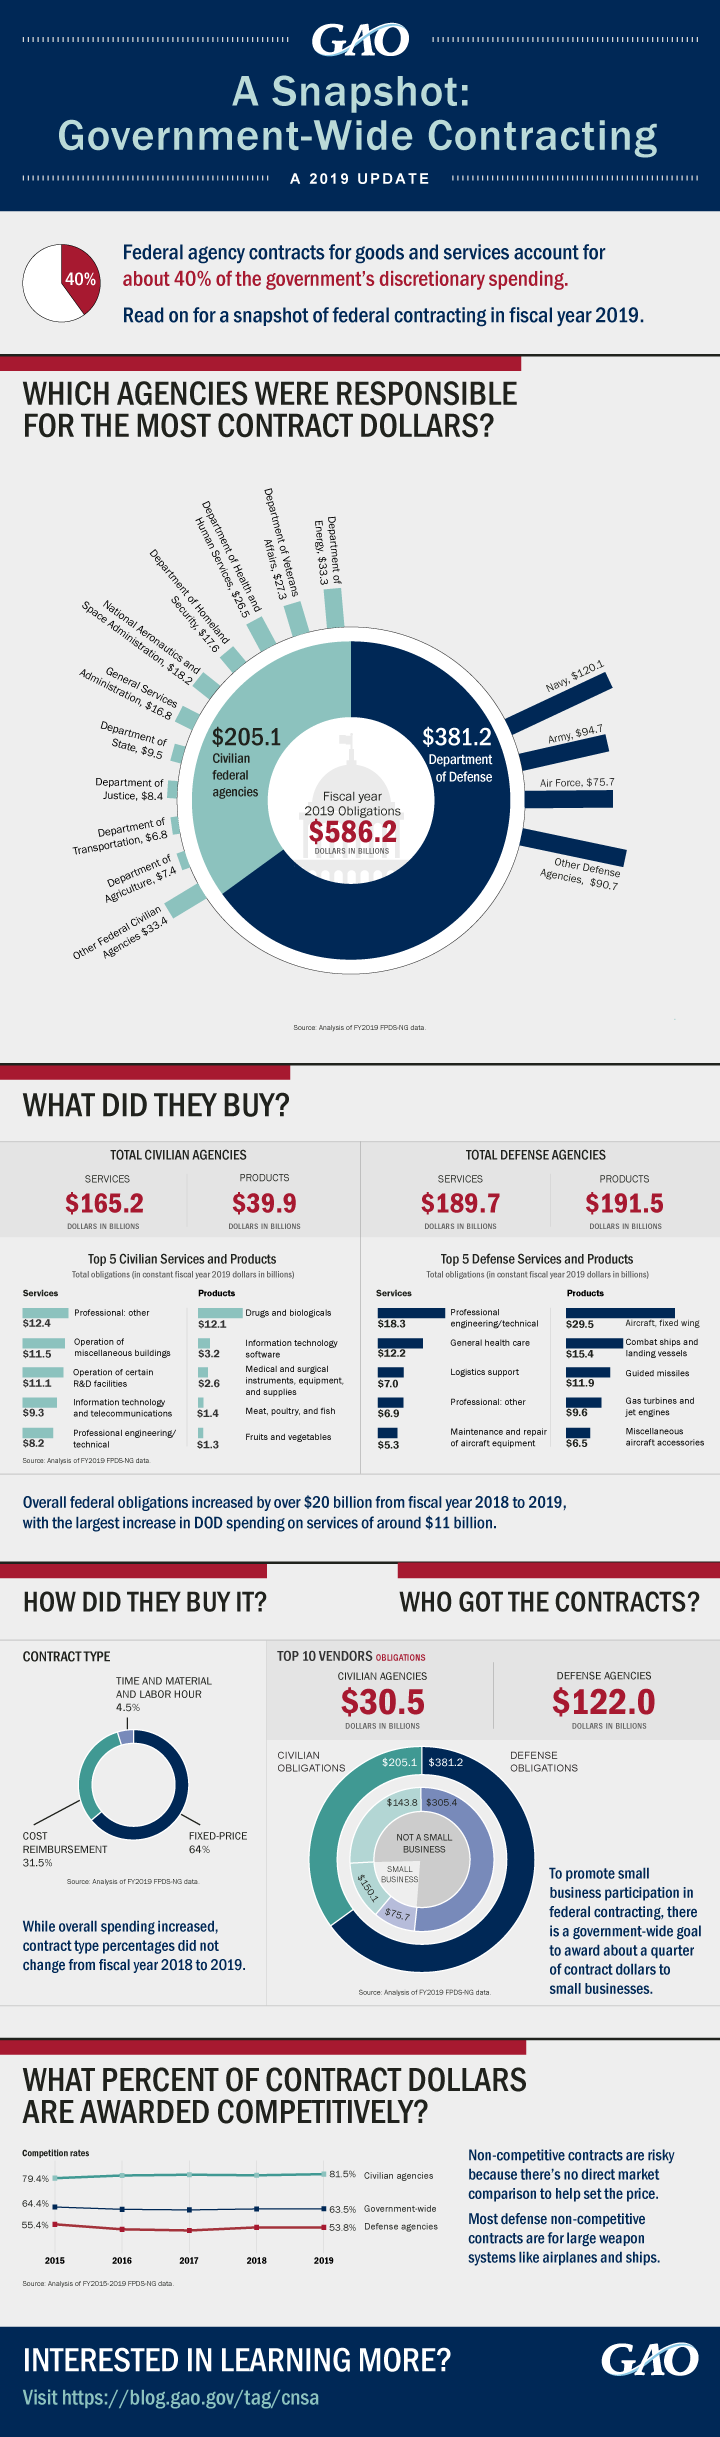 INFOGRAPHIC: A Snapshot: Government-Wide Contracting